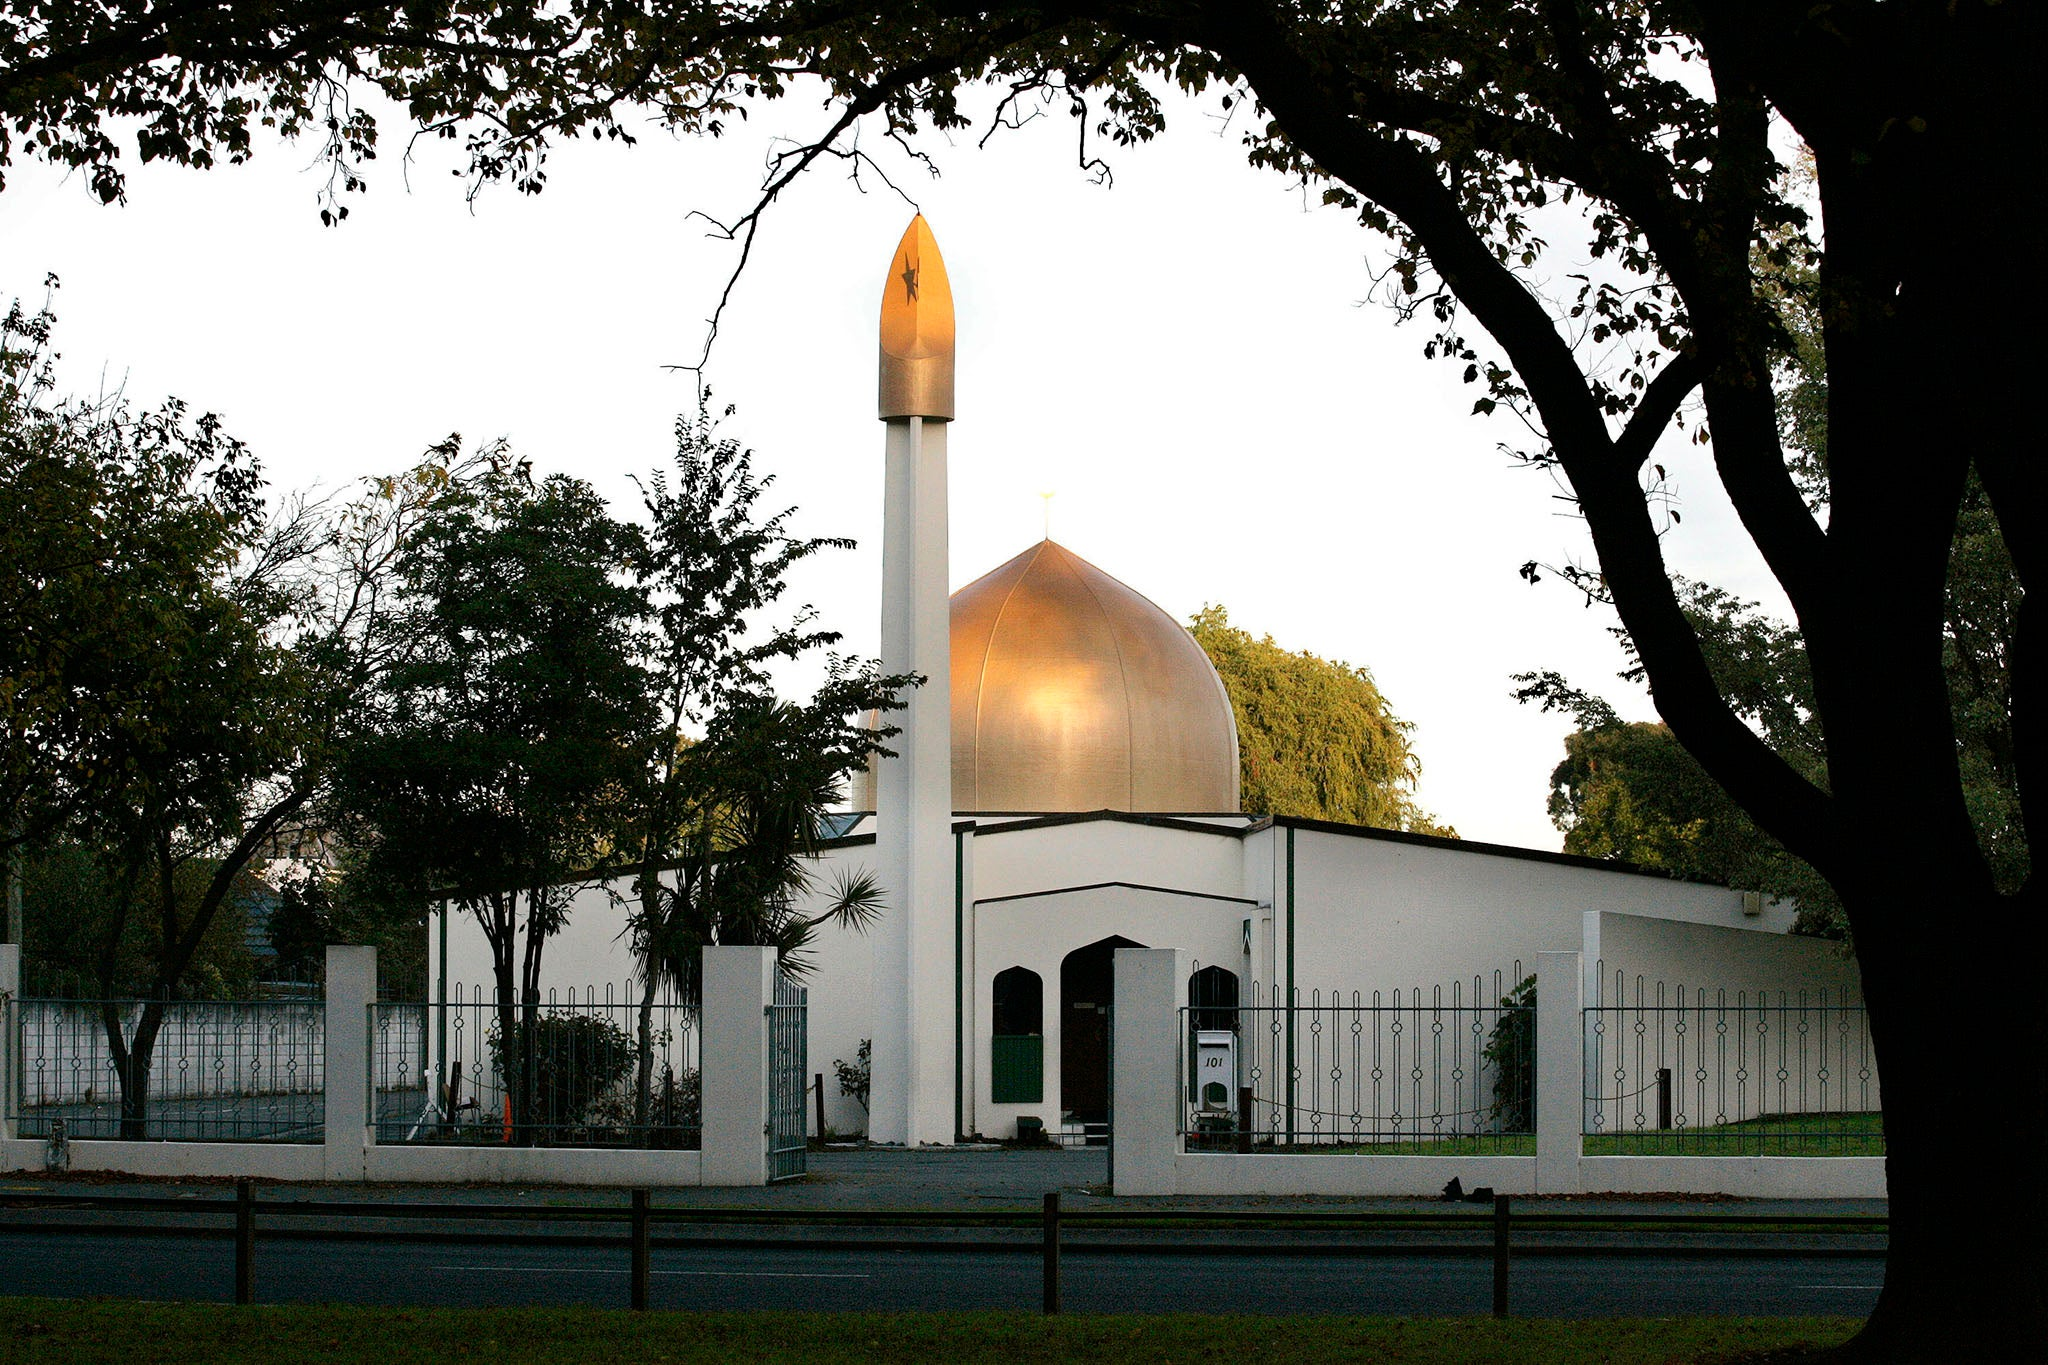 Police patrol UK mosques and vow to 'stand together' with Muslims after deadly New Zealand terror attack